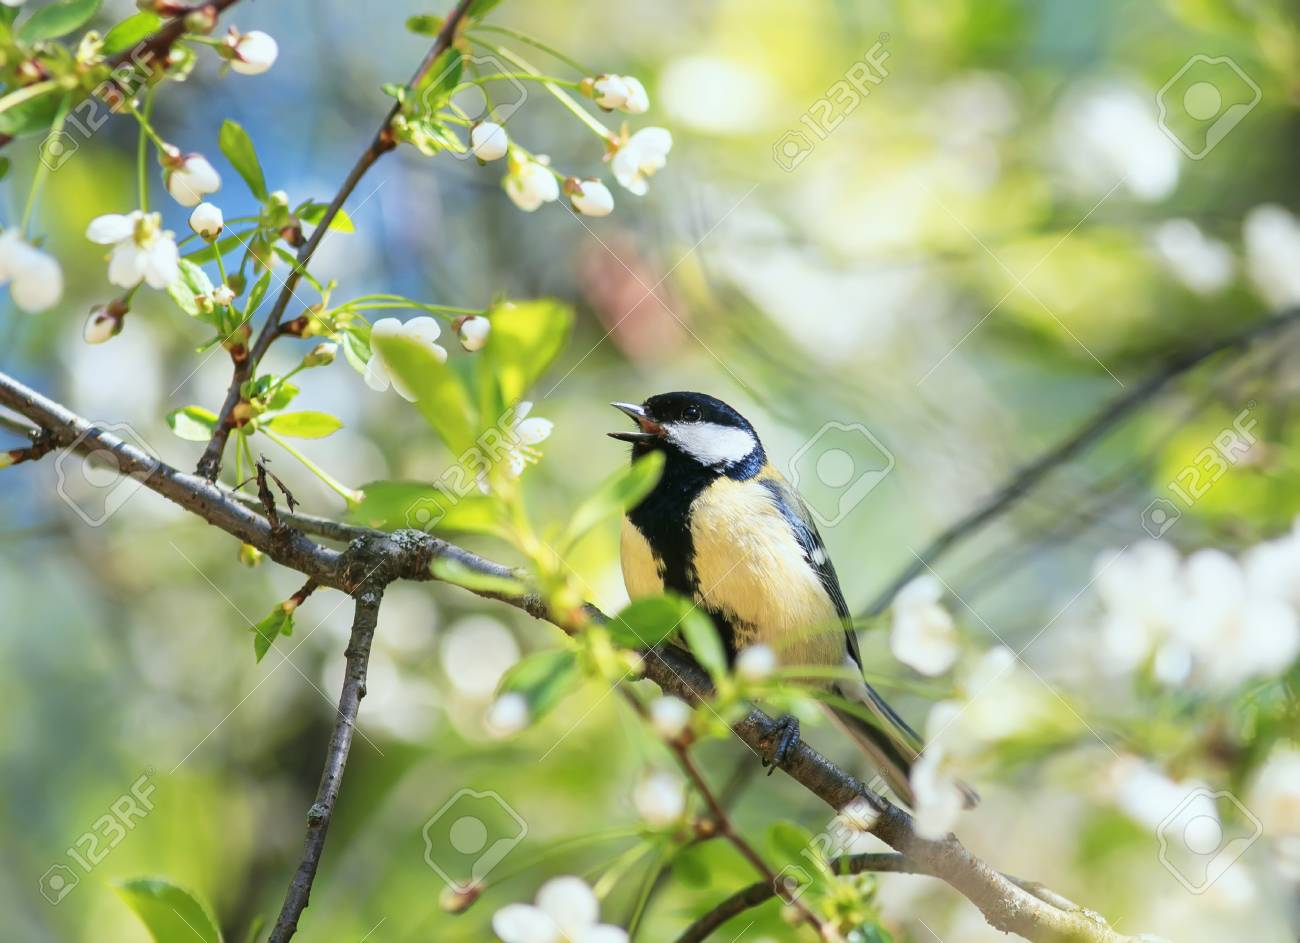 Superior Cute Bird Tit Sings A Beautiful Song In Spring Garden On Branch In May  Flowers Stock